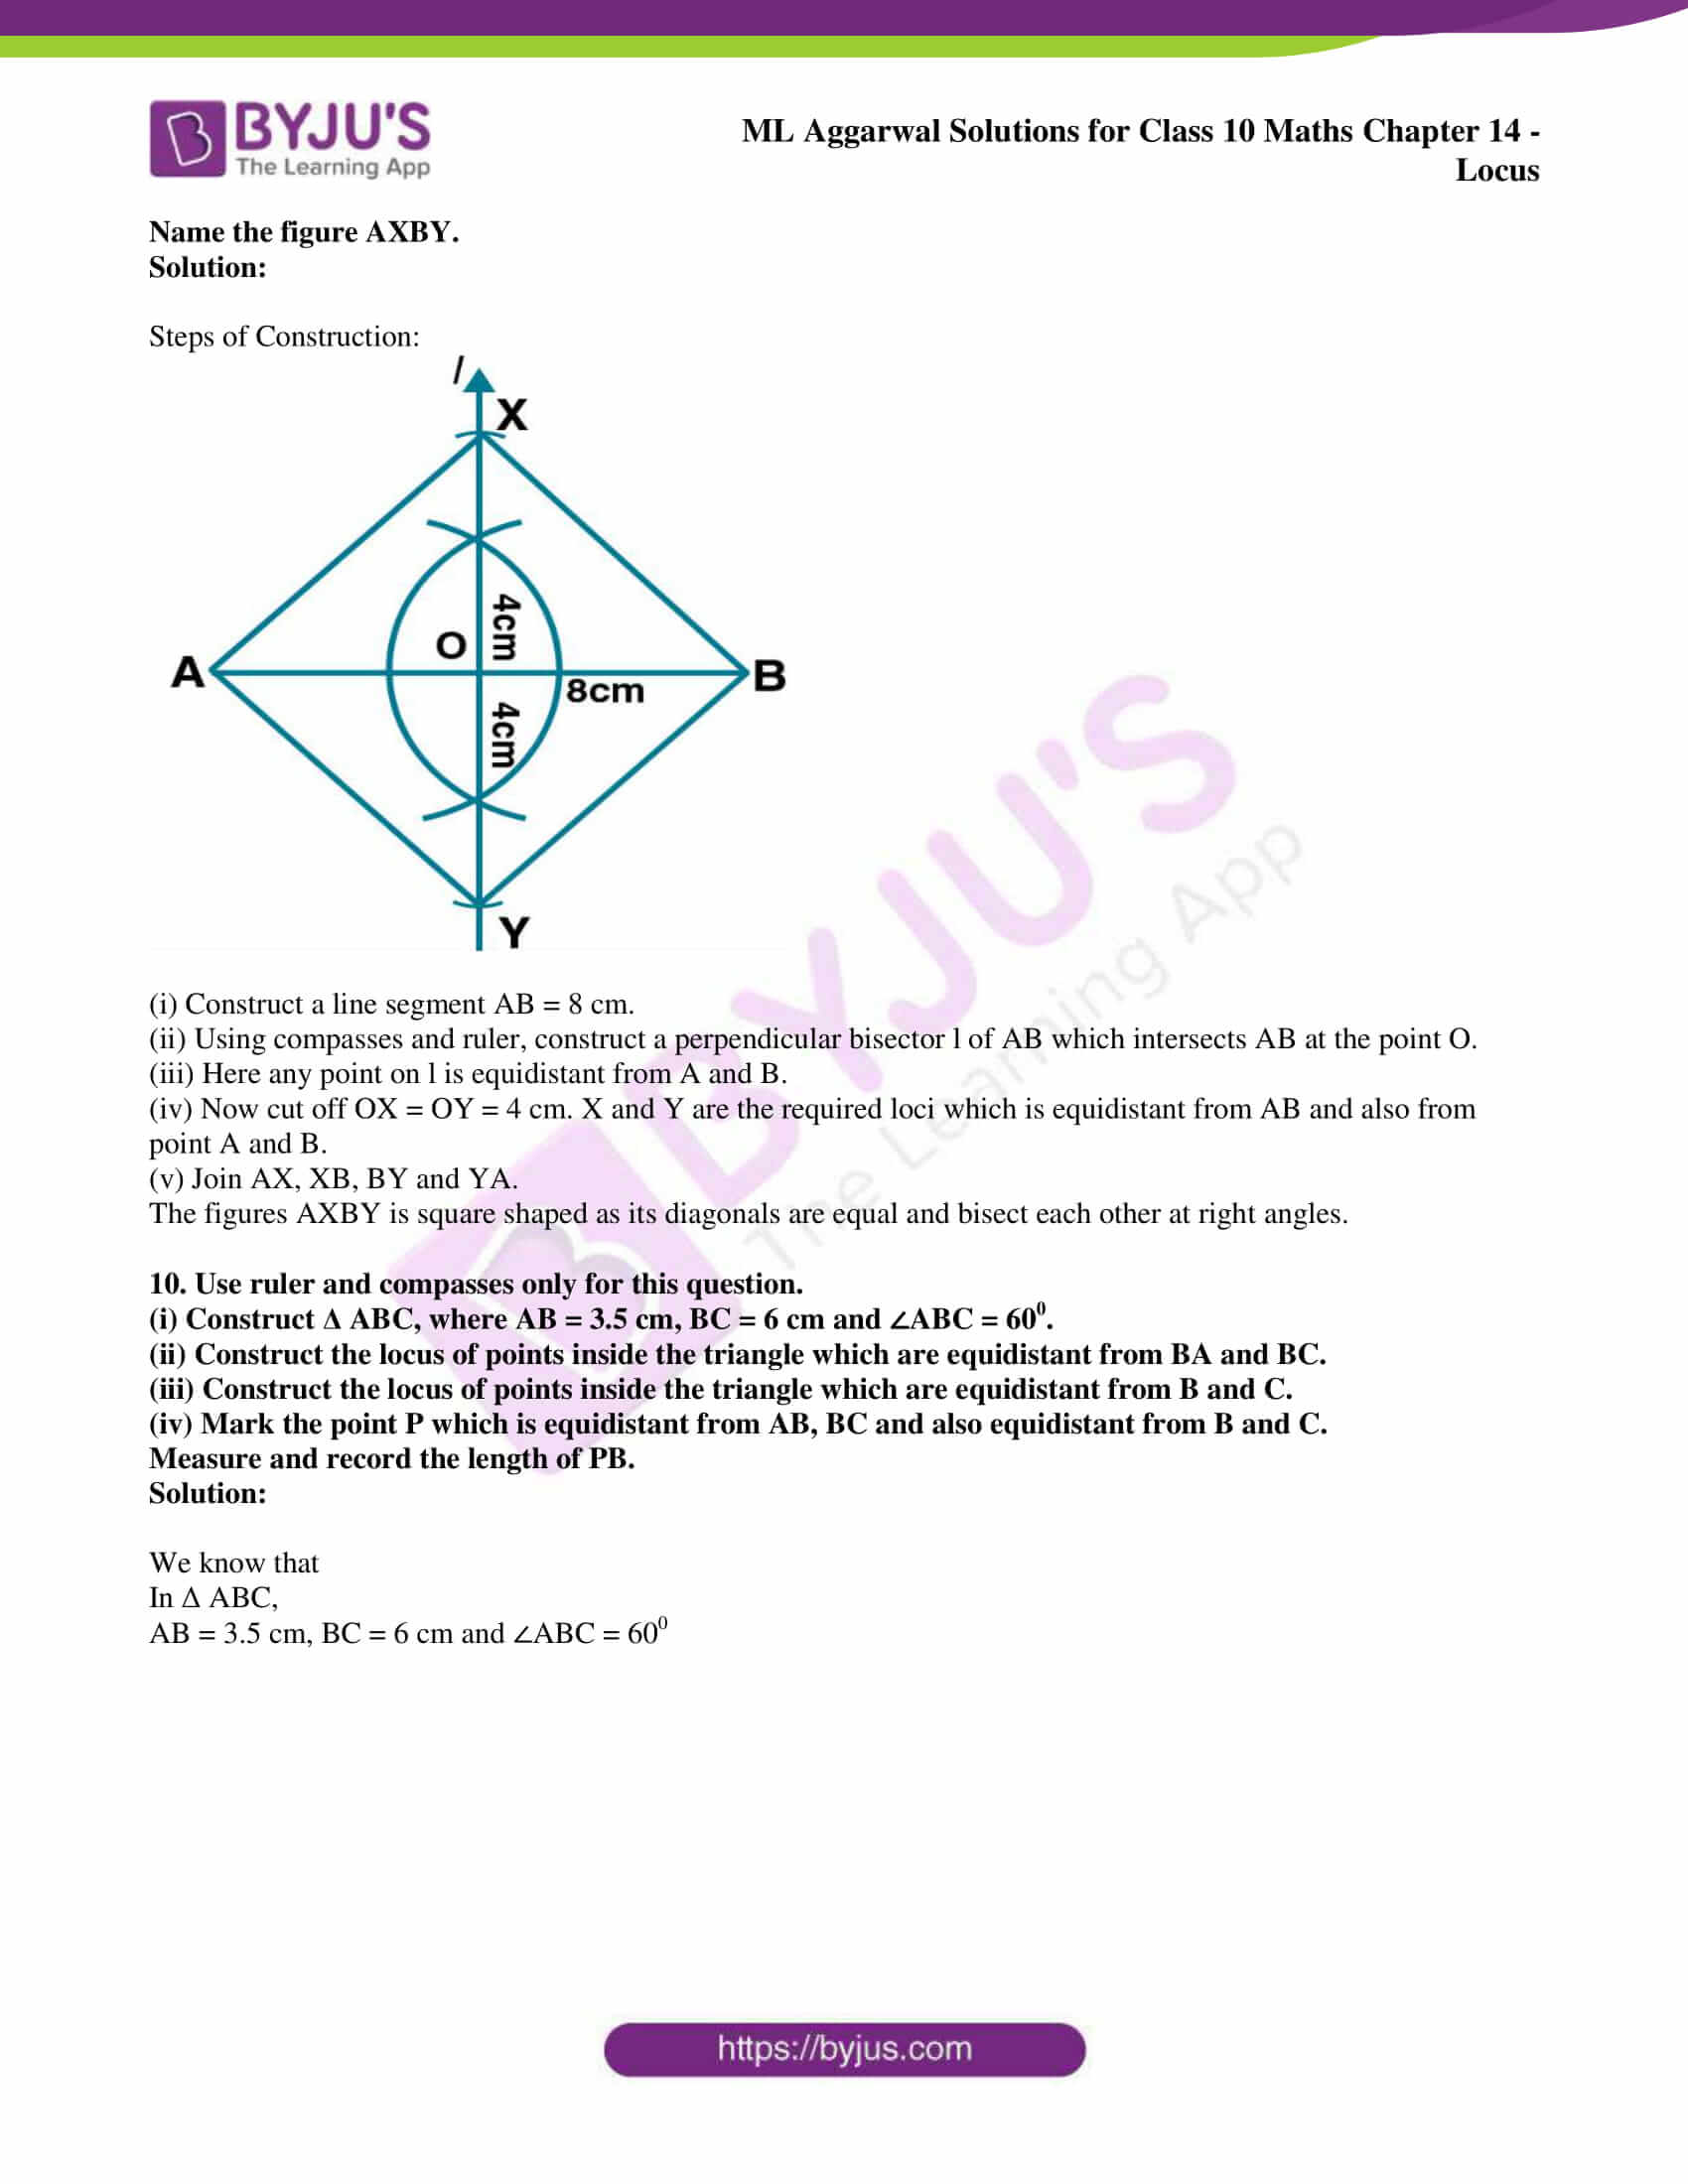 ml aggarwal solutions for class 10 maths chapter 14 10